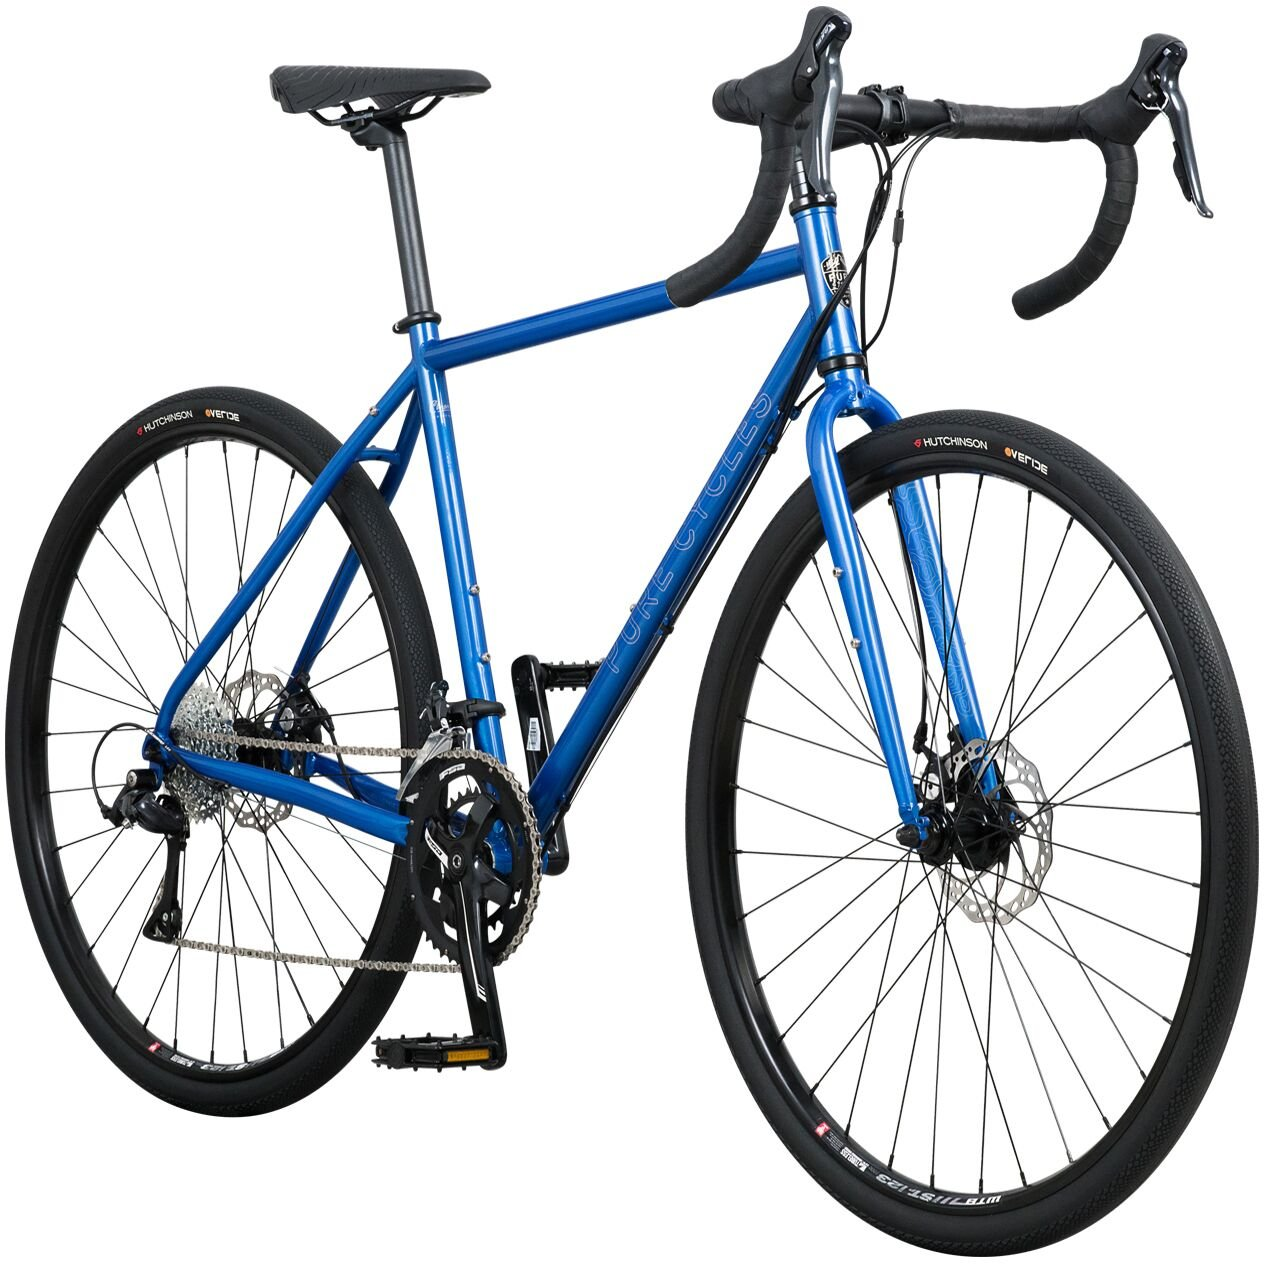 Adventure Gravel Disc Road Bike Best Touring Bikes Under $1000